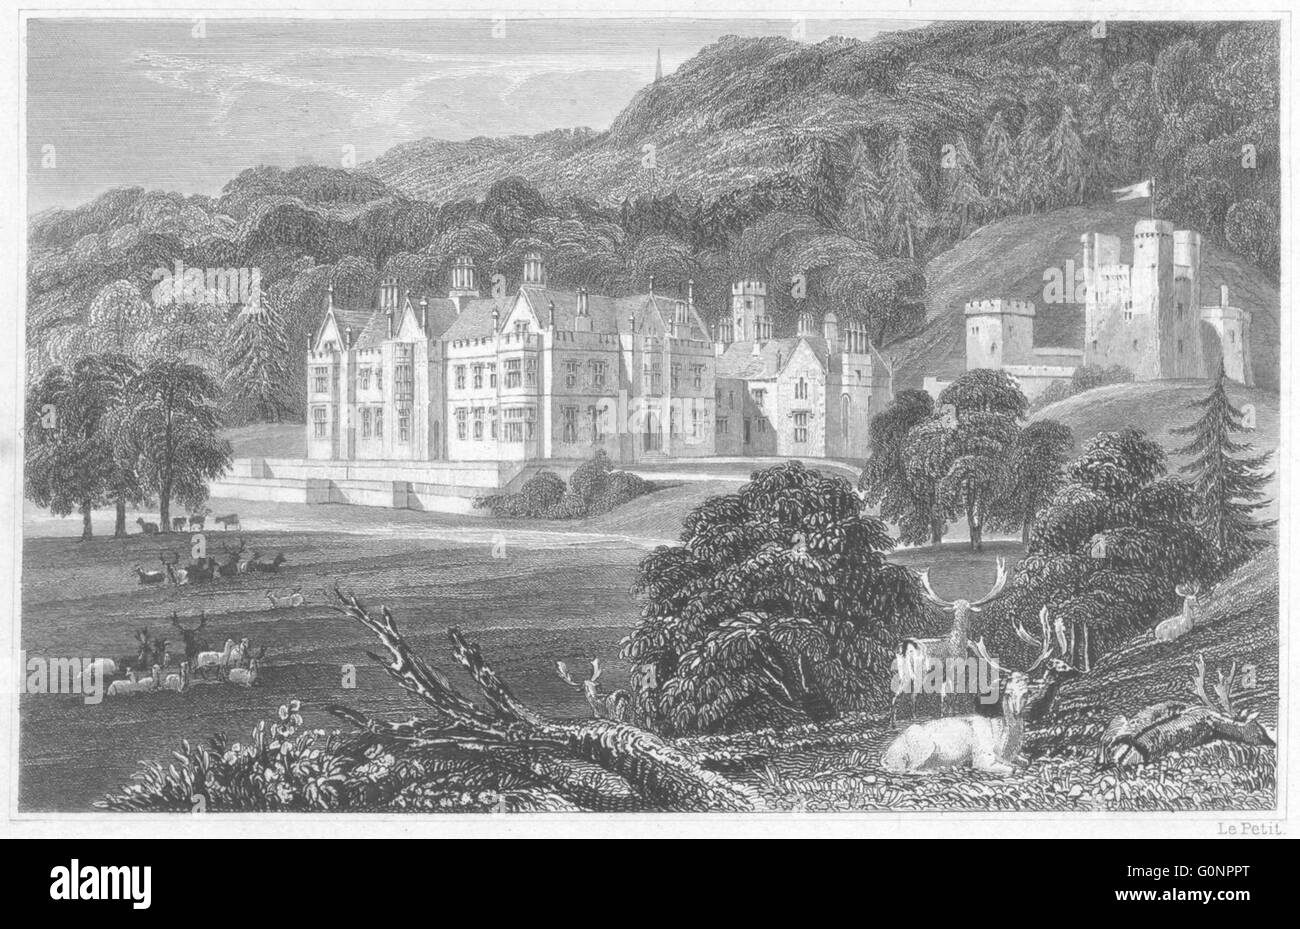 DEVON: Mamhead Hall, near Dawlish (The seat of RW Newman Esq), old print 1829 Stock Photo